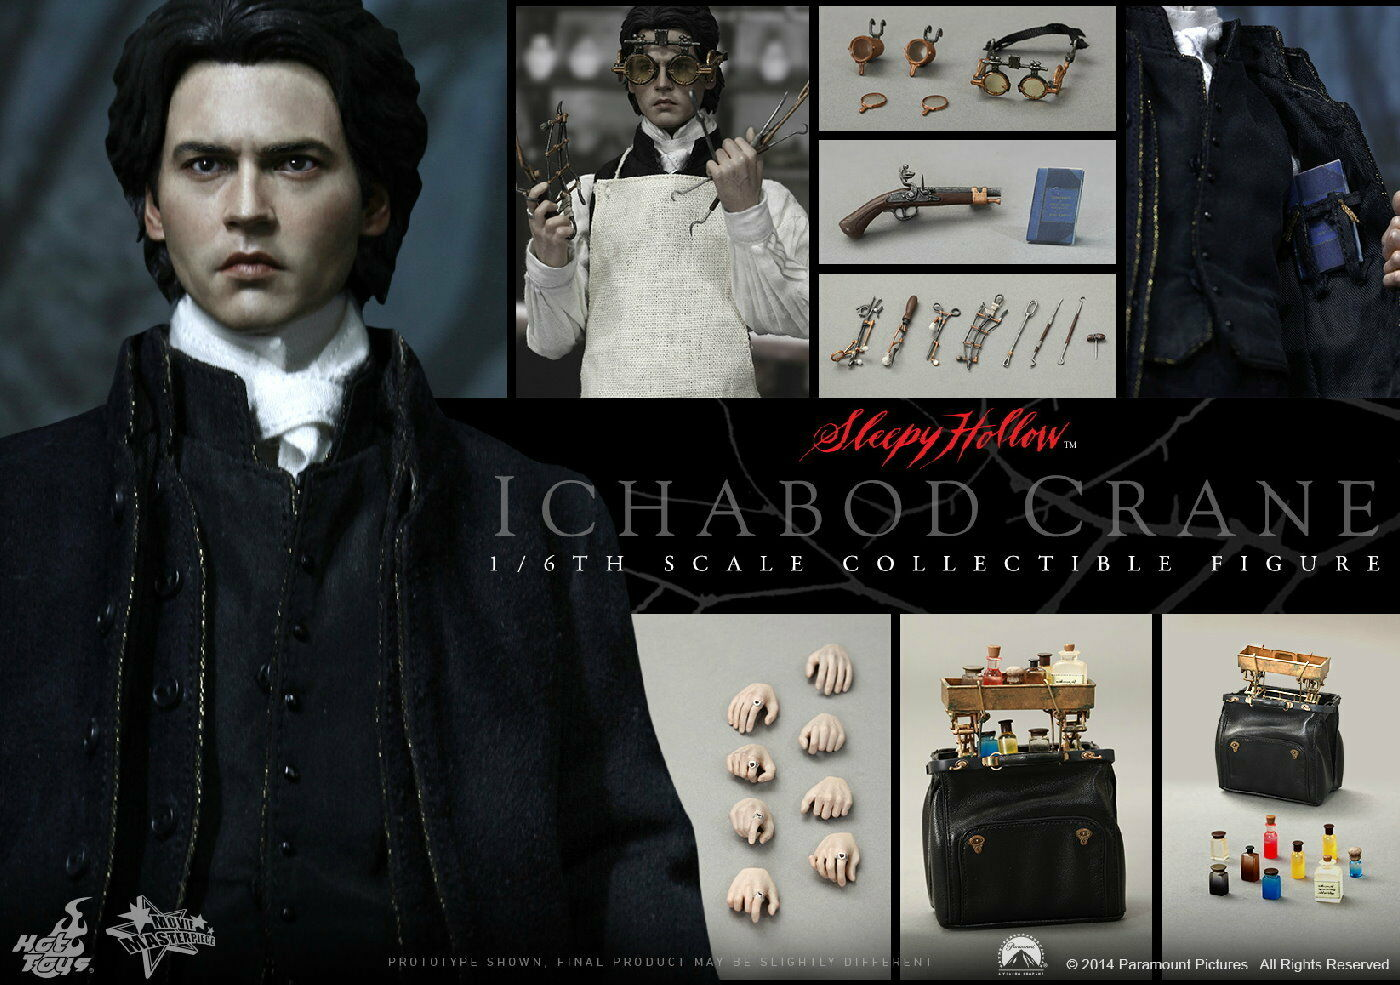 was ichabod crane a real person